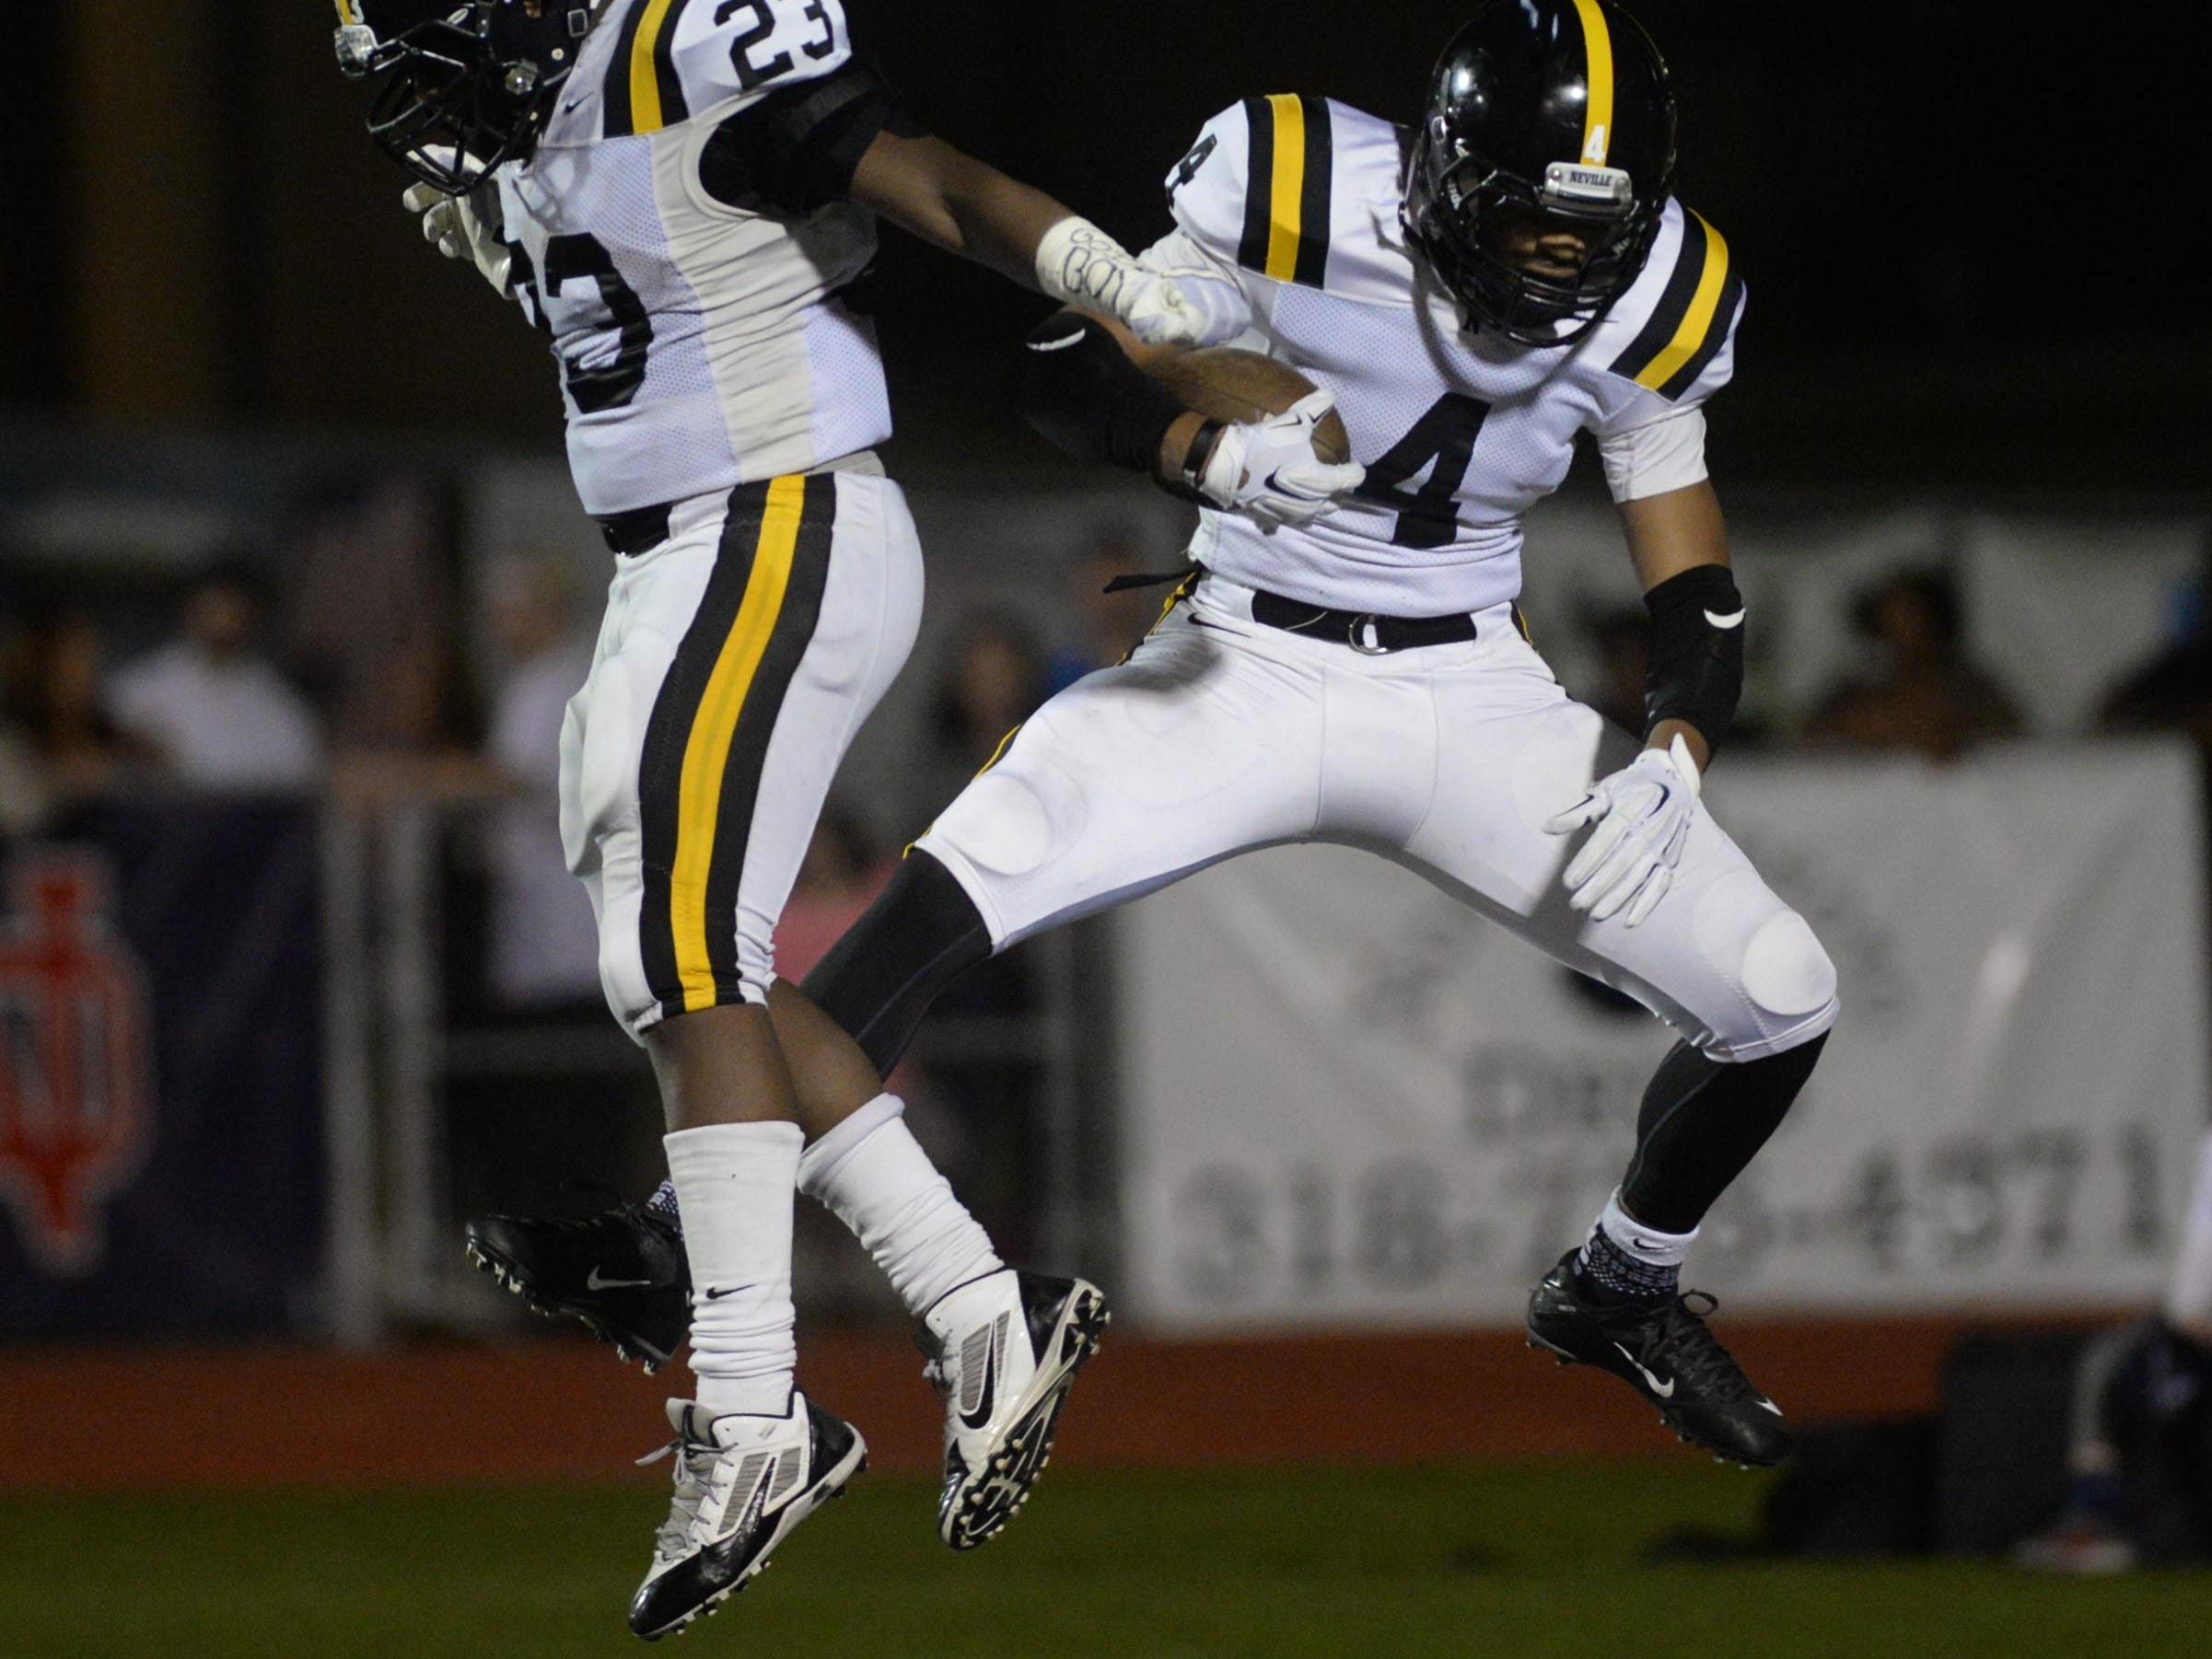 William Wooten (left) and Donald Jenkins celebrate Jenkins second quarter touchdown against North DeSoto.